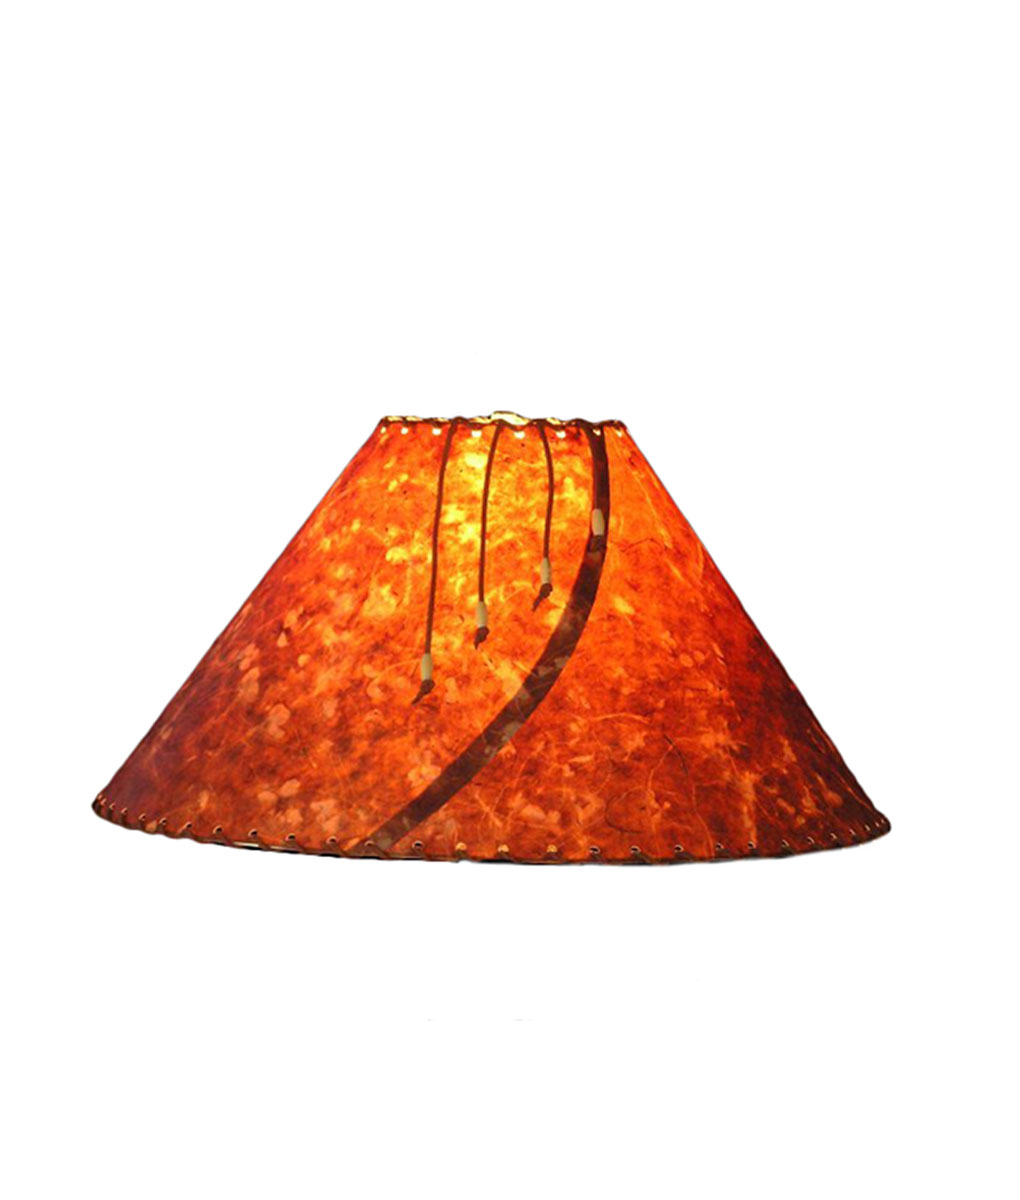 Handmade paper lamp shades with natural buttons and leather lacing from Rustic Artistry